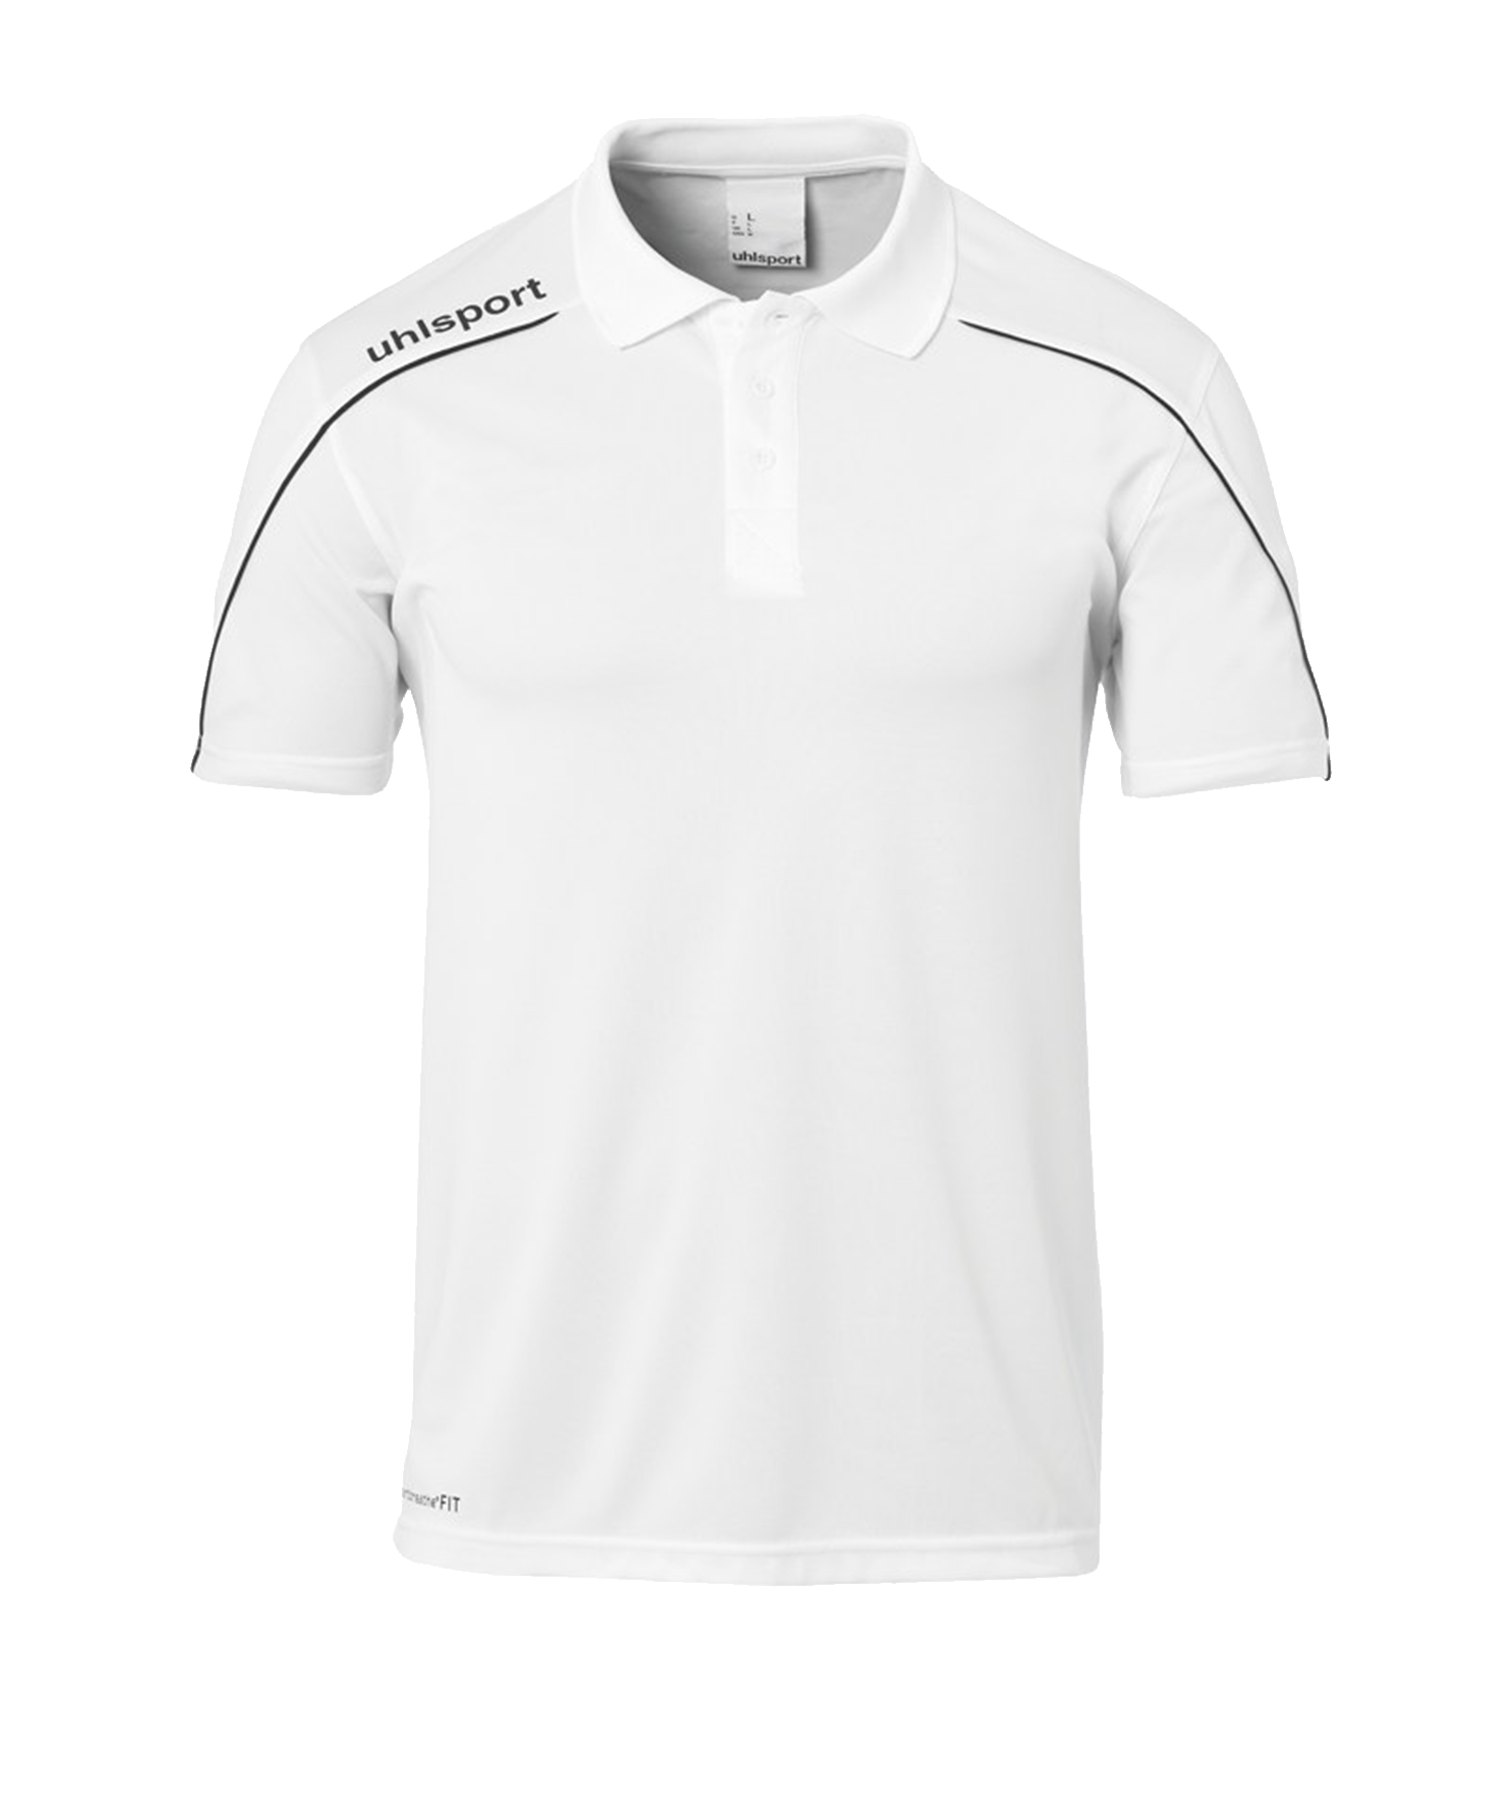 Uhlsport Stream 22 Poloshirt Kids Weiss F02 - Weiss